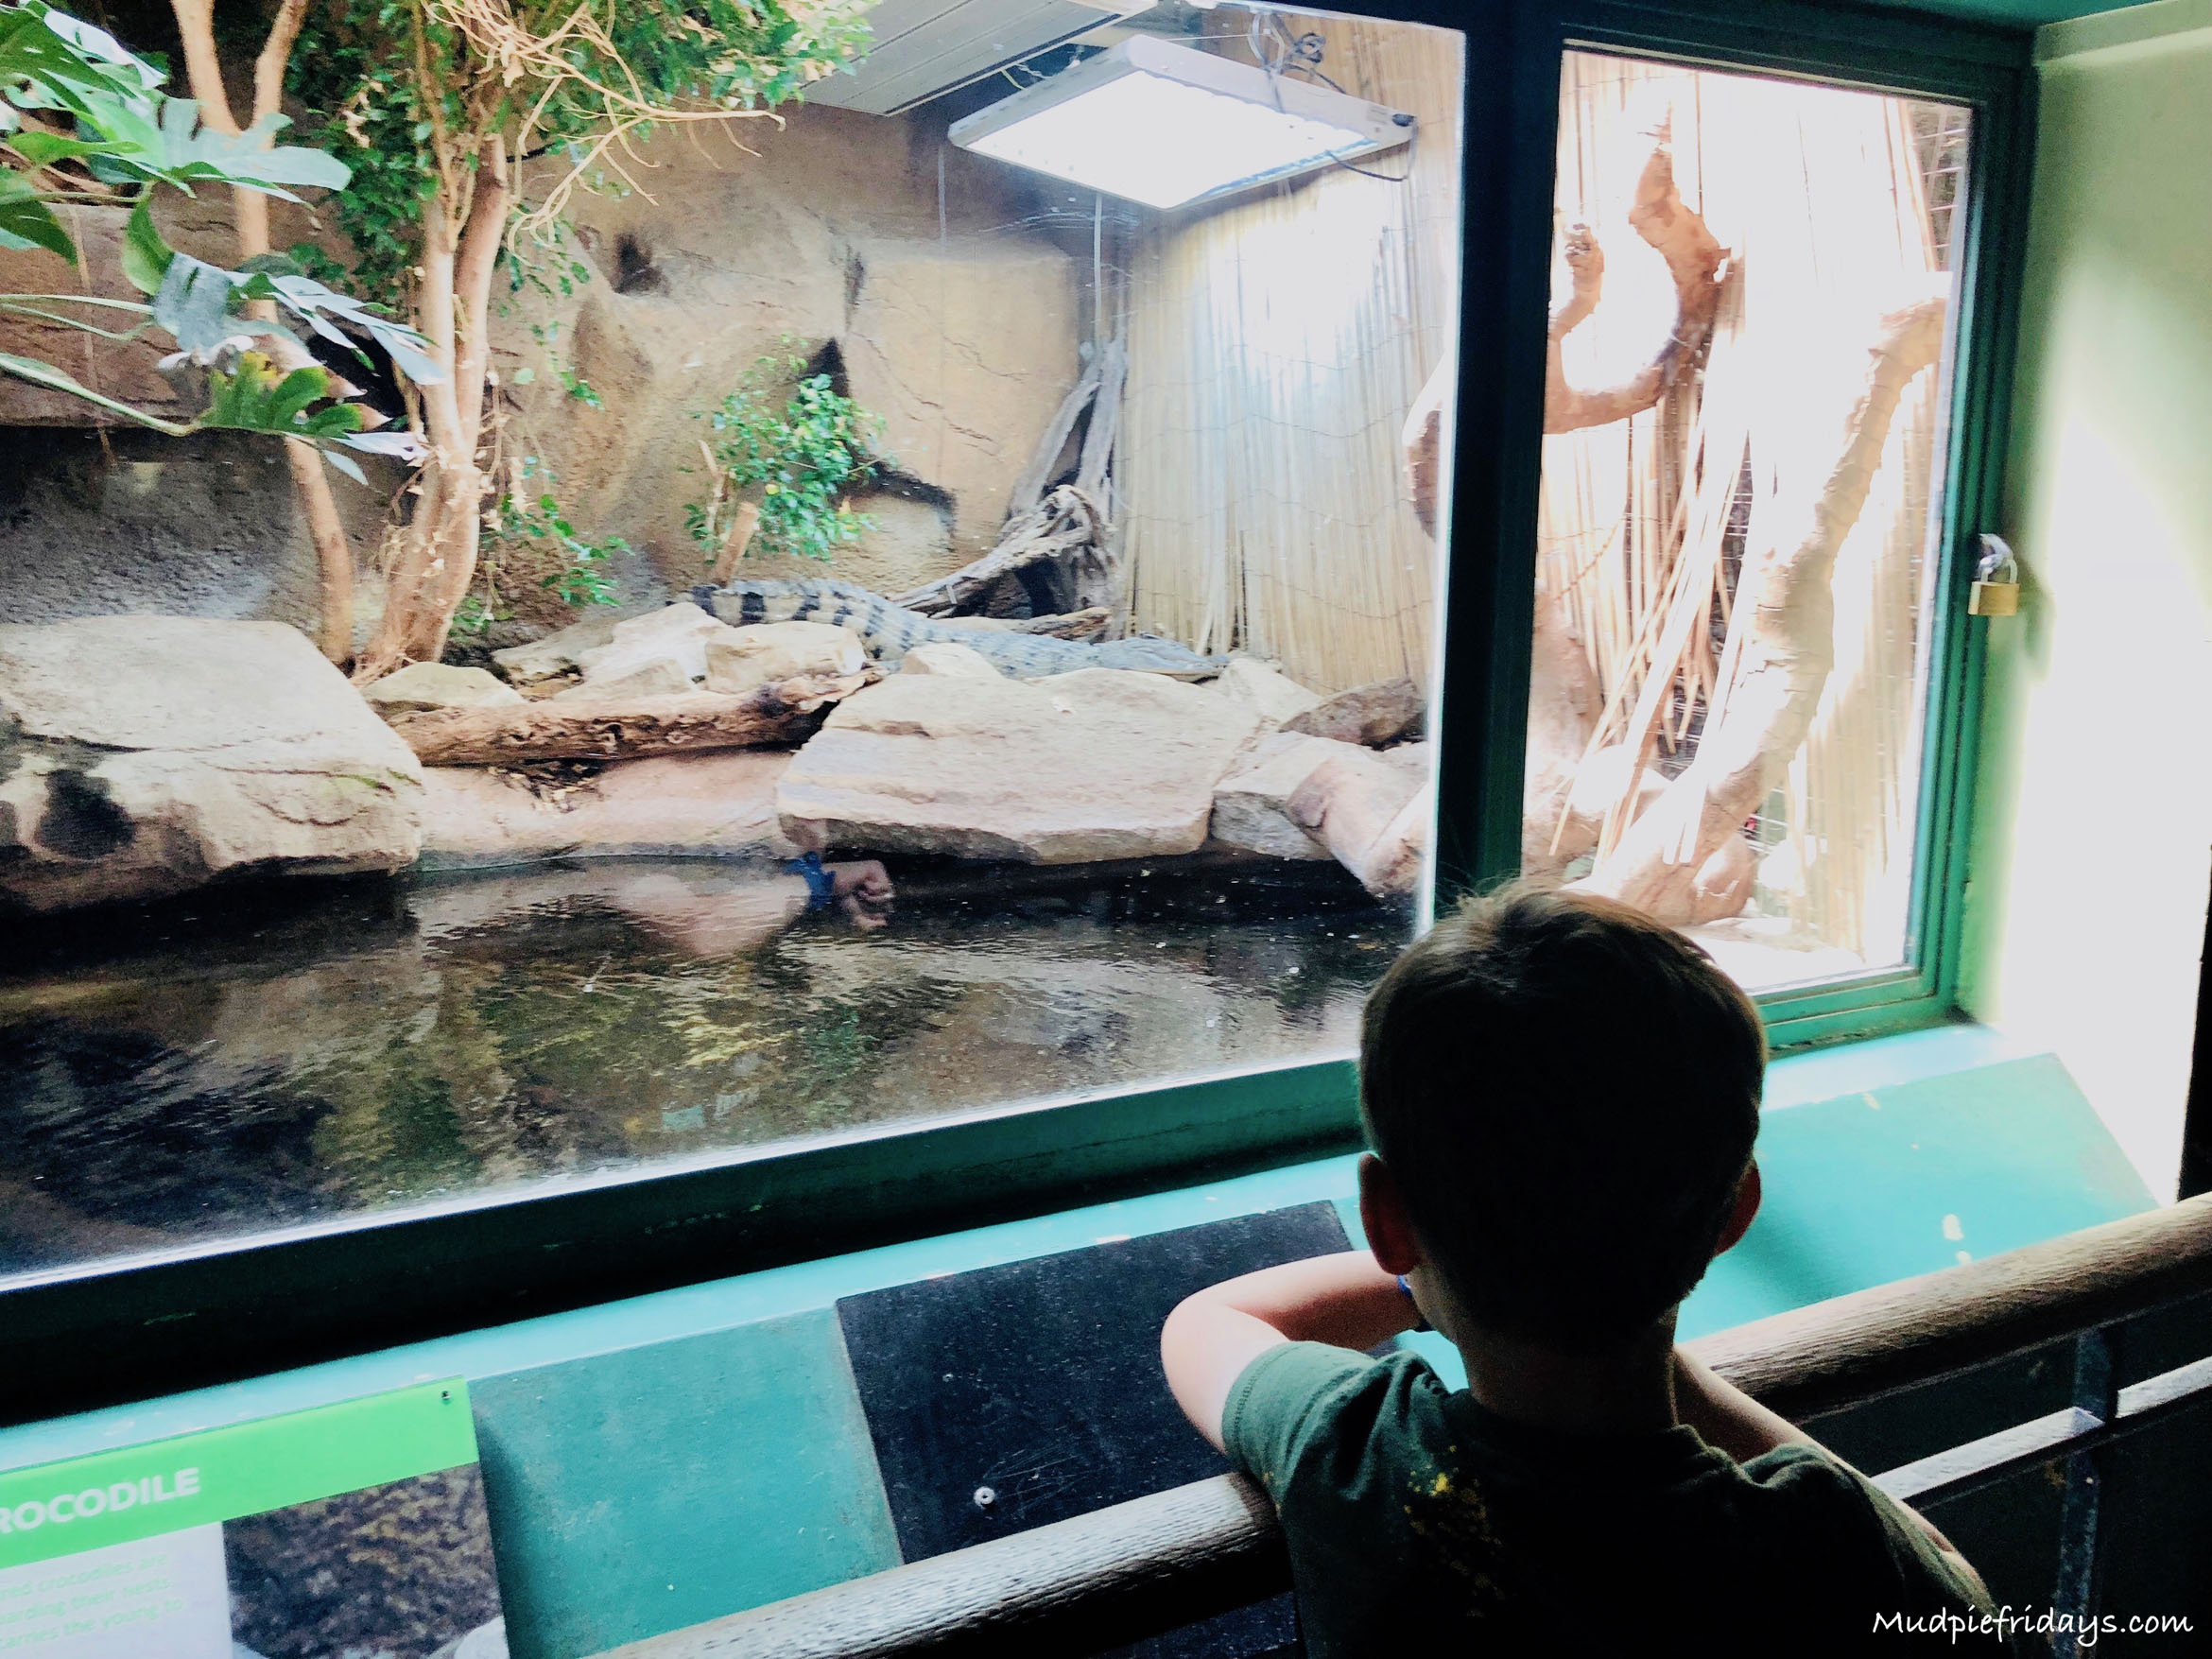 Family Fun at ZSL London Zoo - mudpiefridays com